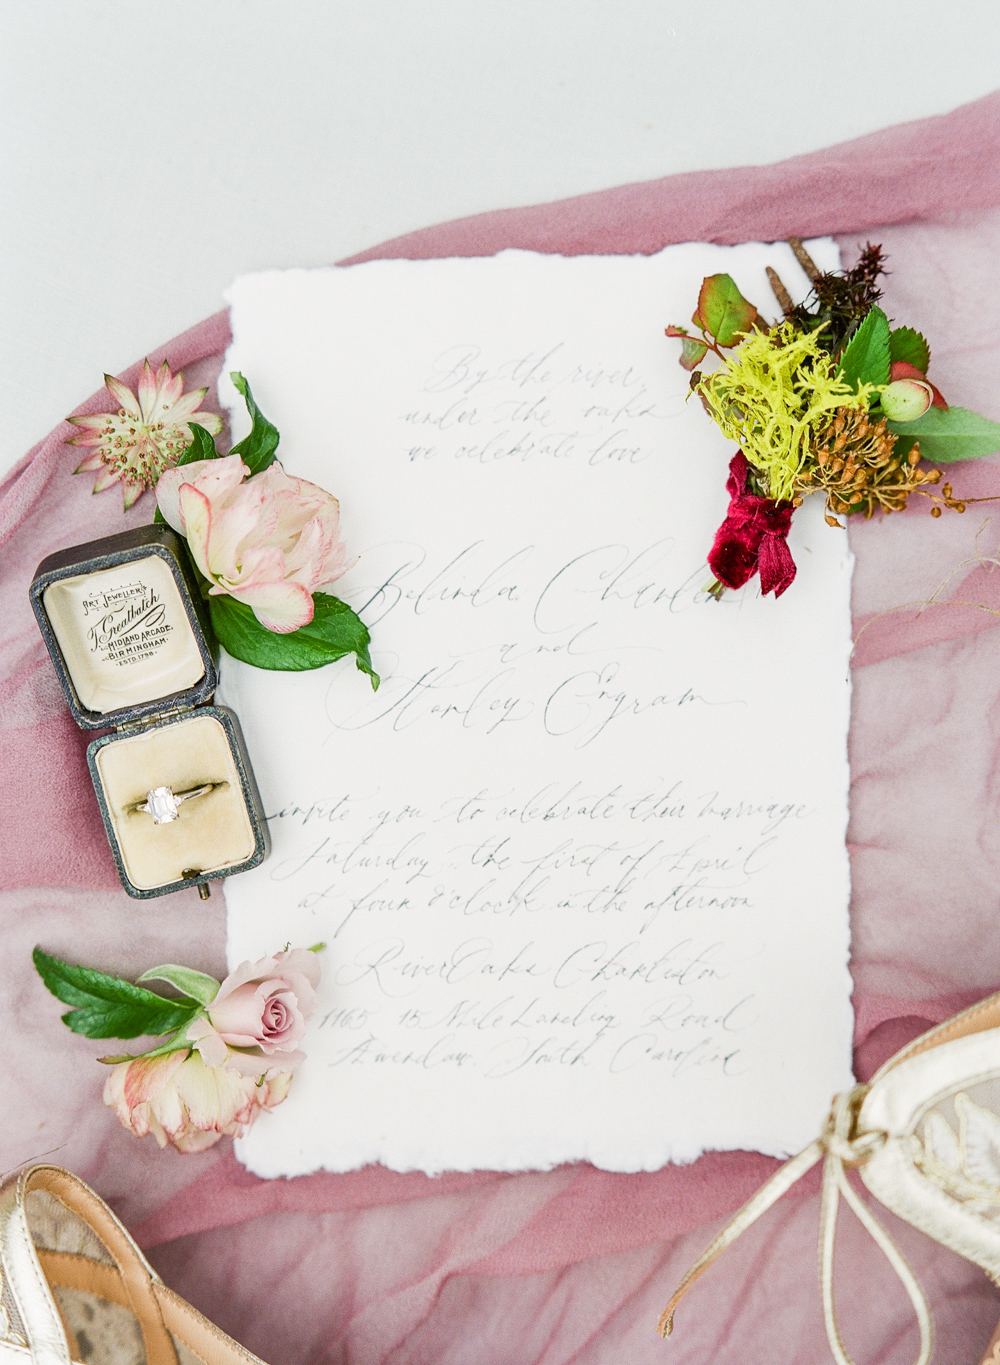 Janine_Licare_Photography_Charleston_Wedding_Romantic_Bella_Belle_Shoes_East_Made_Event_Company_BHLDN_Destination-2.jpg